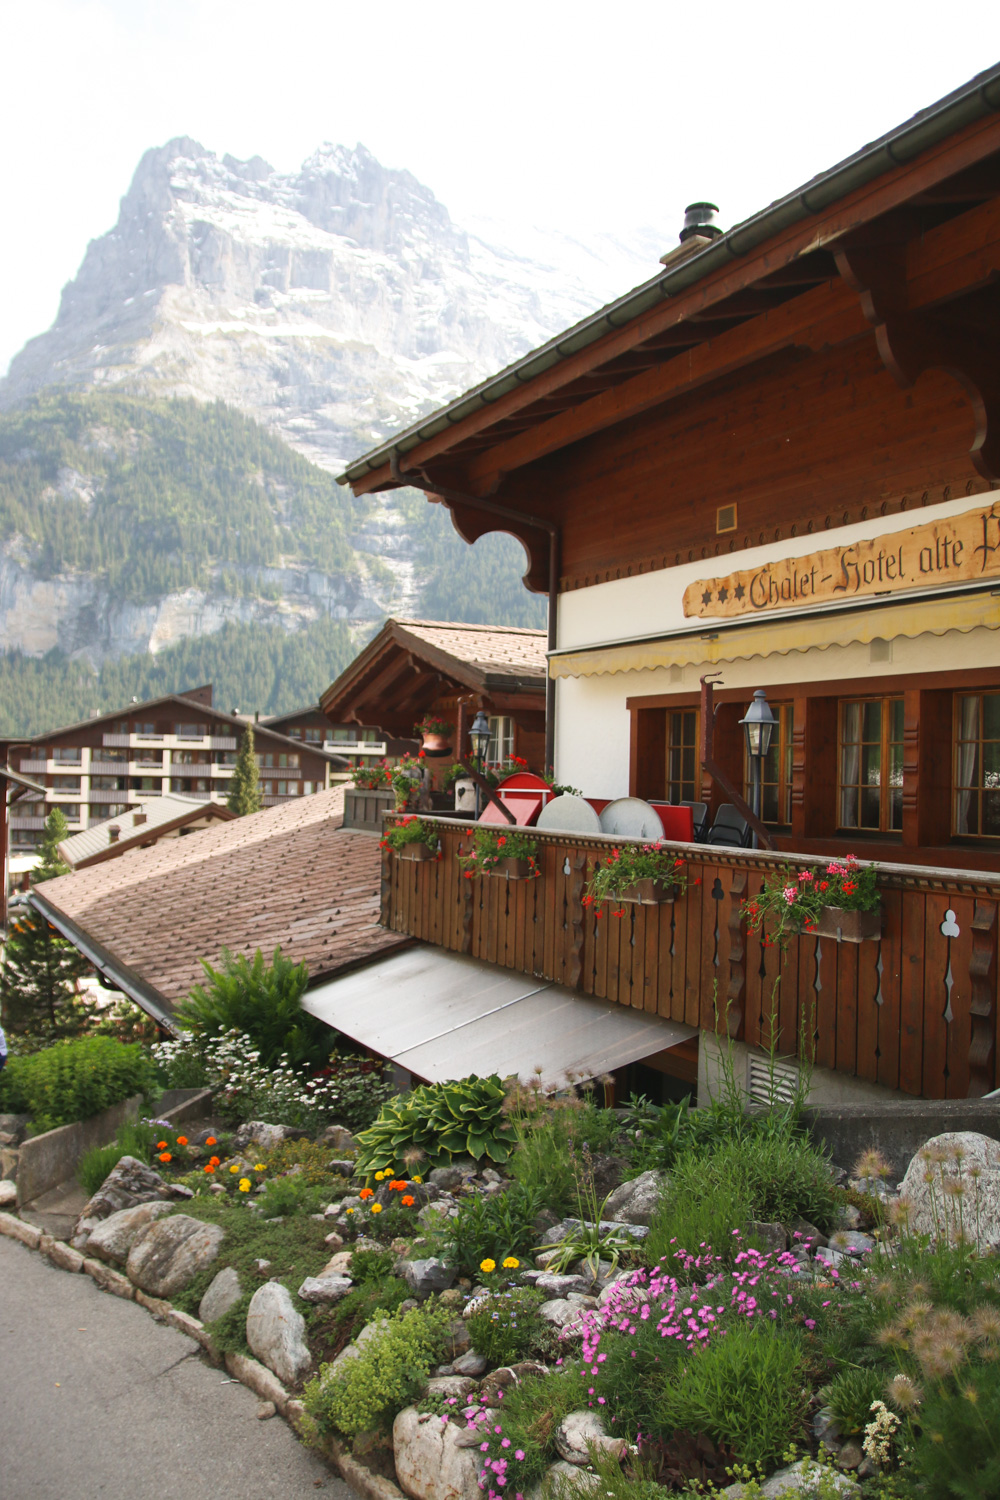 Grindelwald at Interlaken, Switzerland